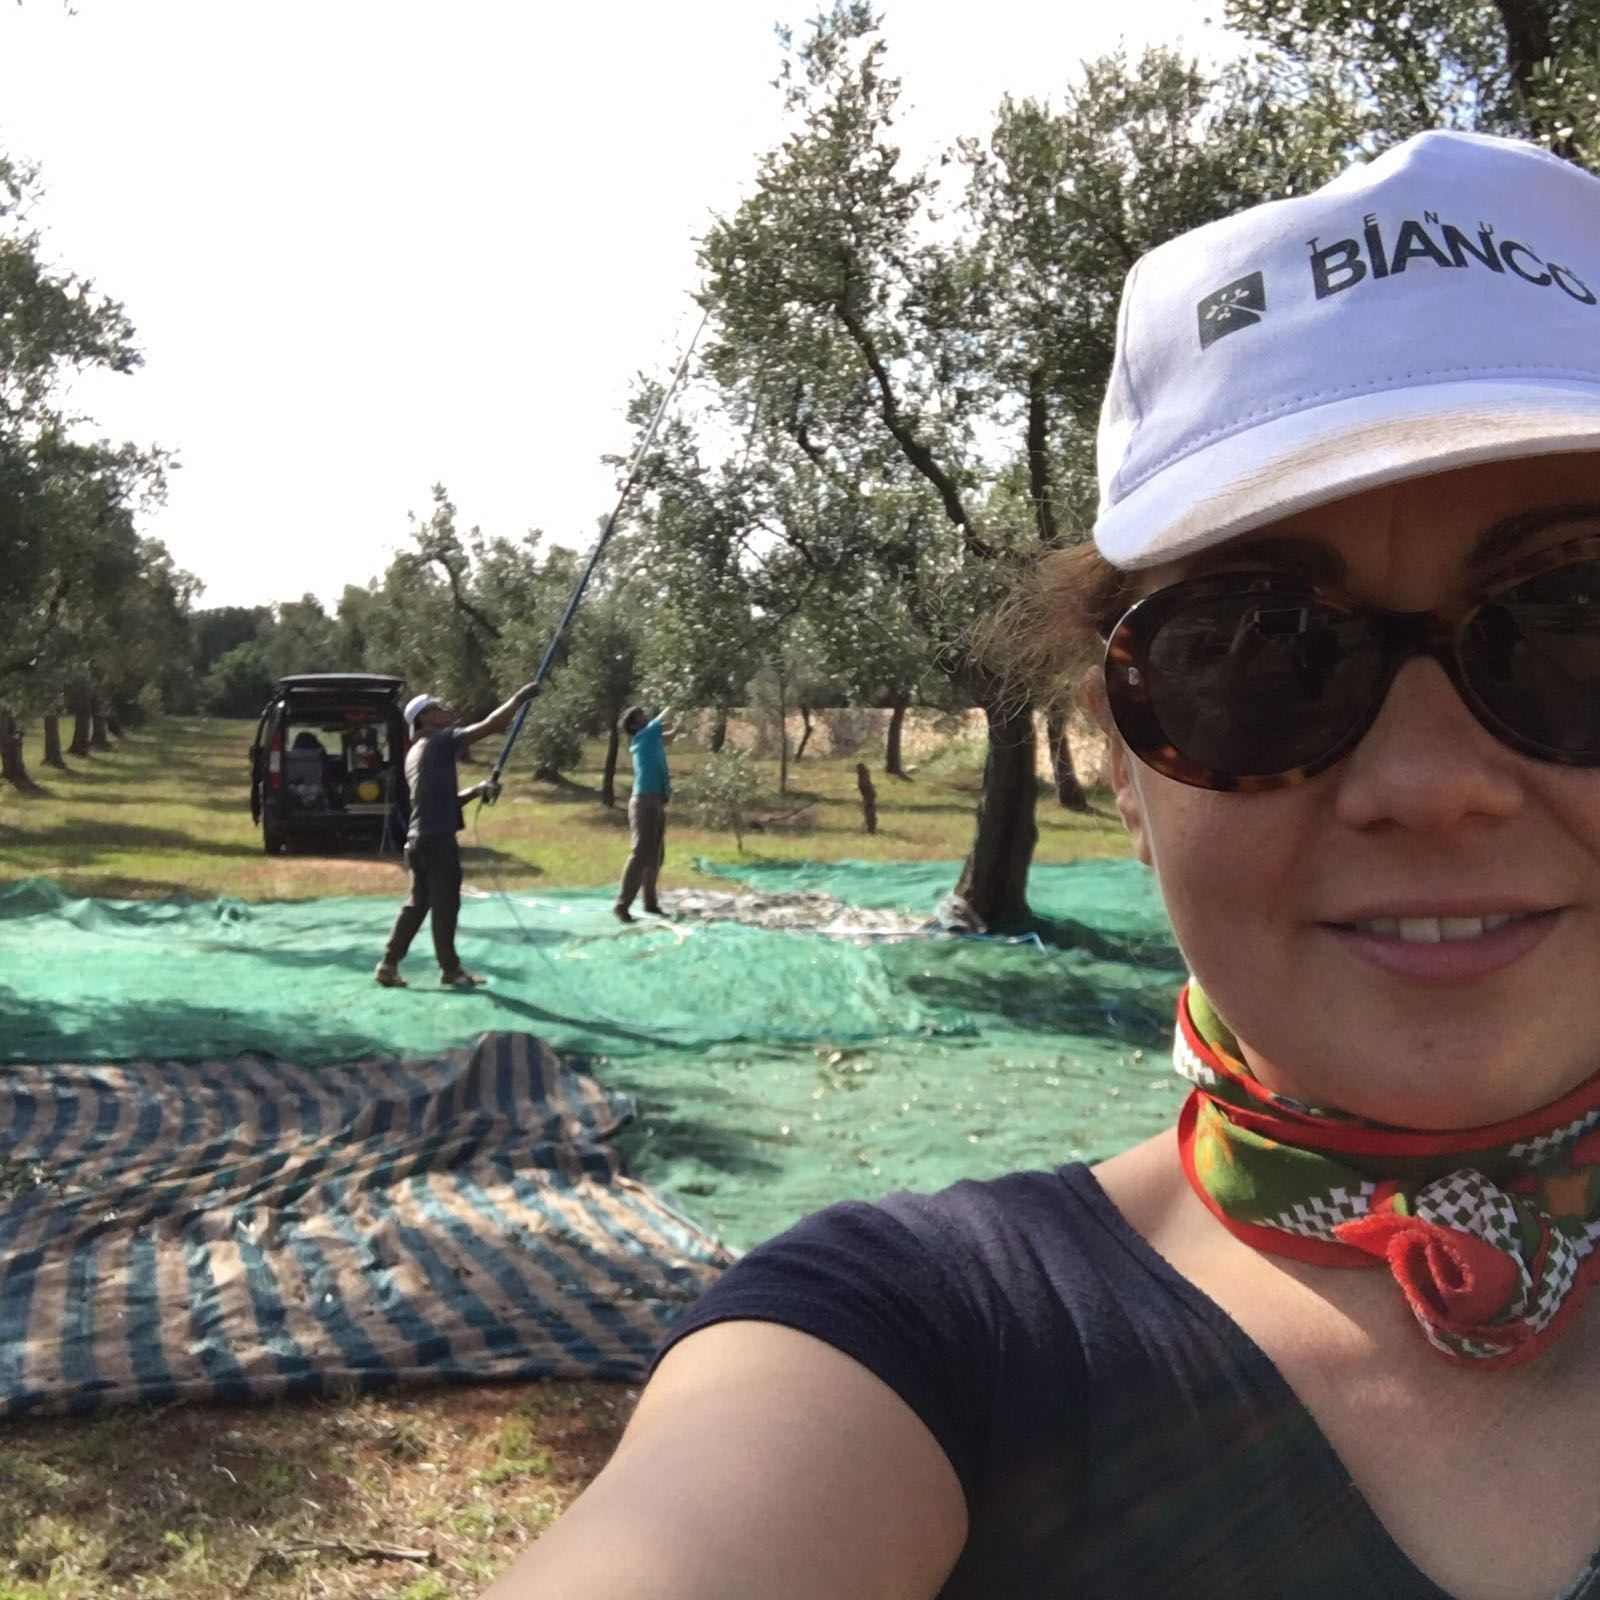 Le olive raccolte in Salento